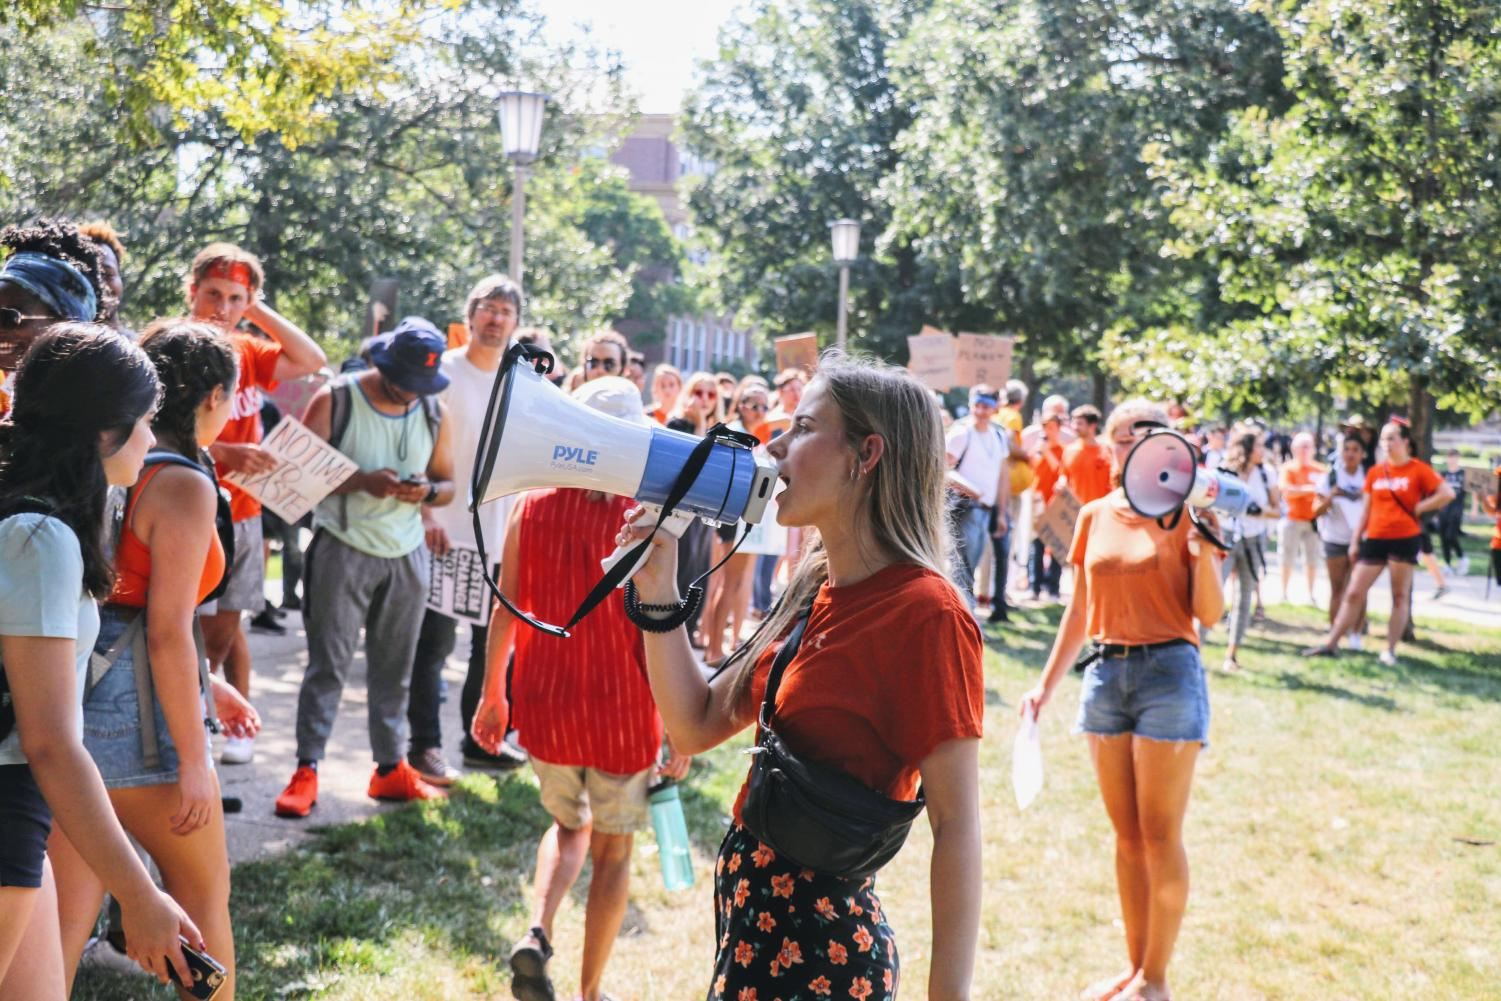 A student rallies participants of the climate change march on Sept. 20. Students and members of the local community gathered to join in protesting the government's lack of influence in combating climate change.